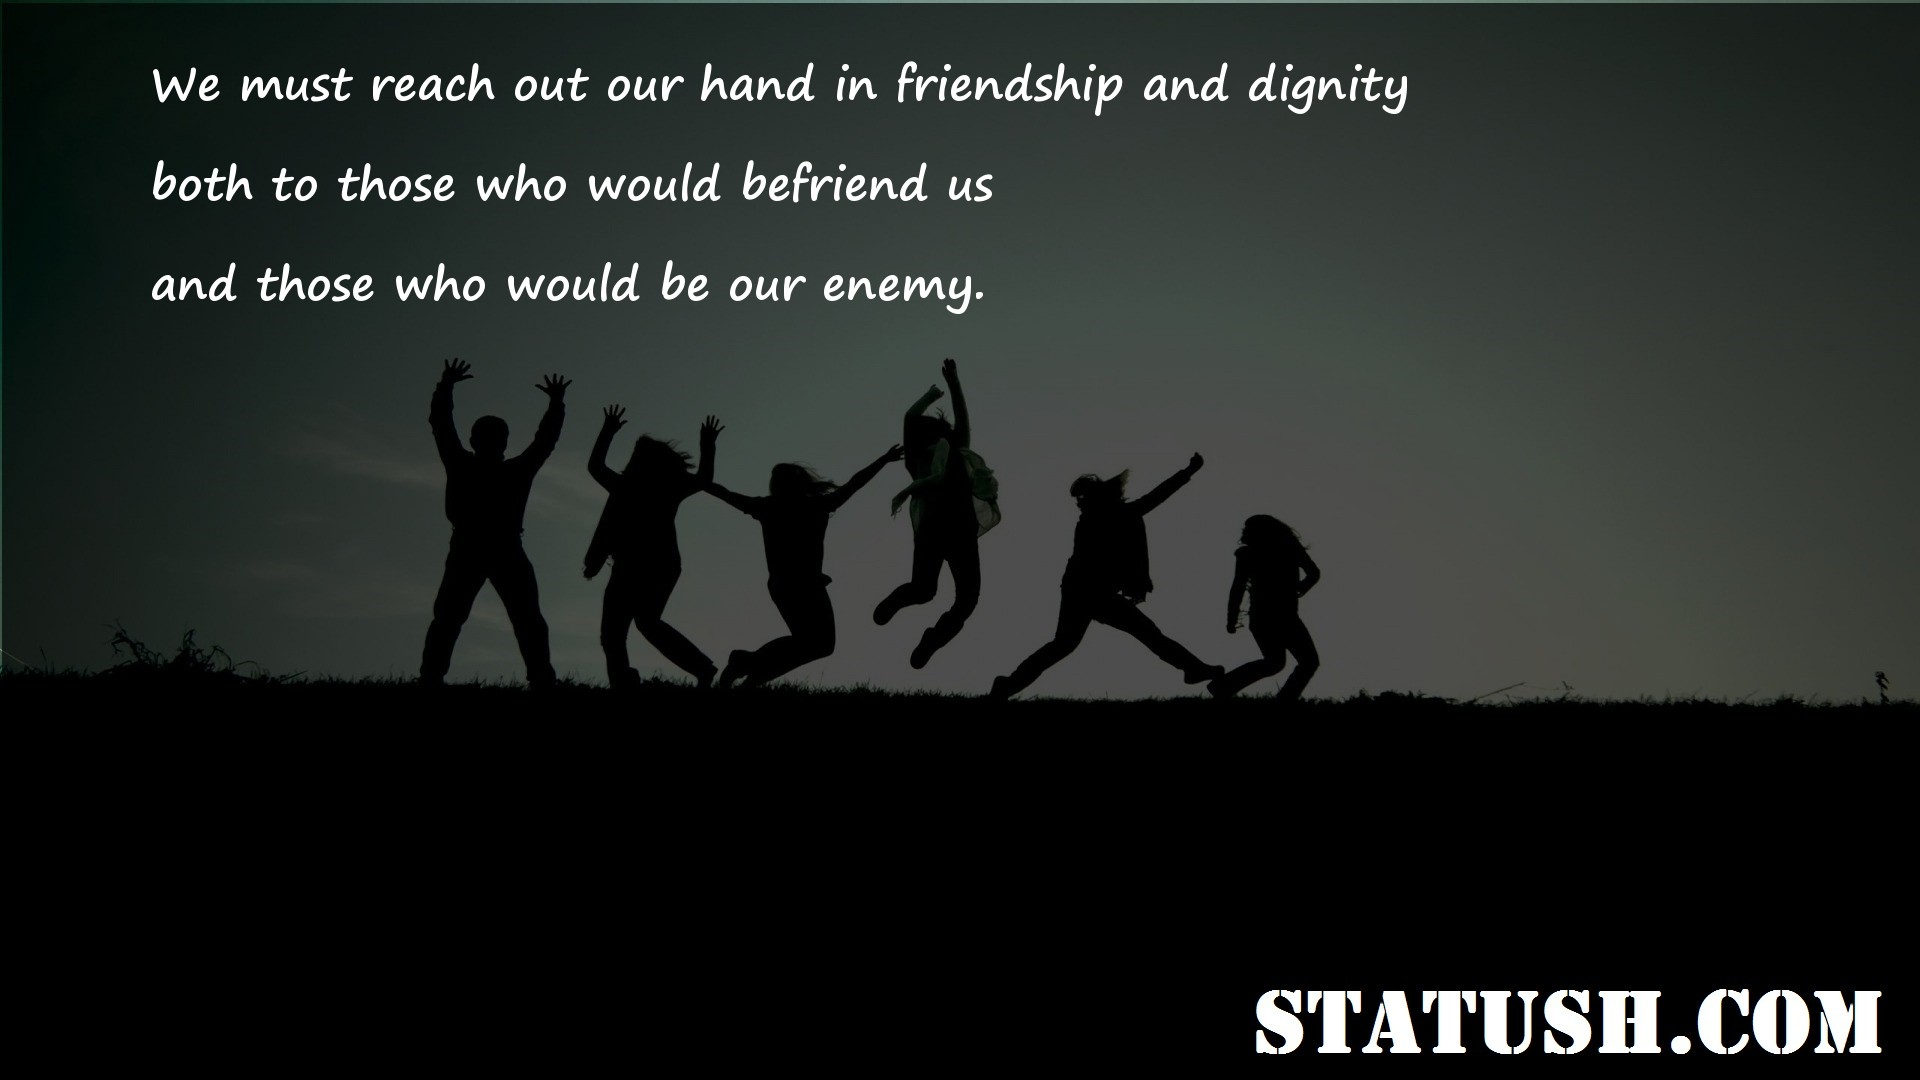 We must reach out our hand in friendship and dignity